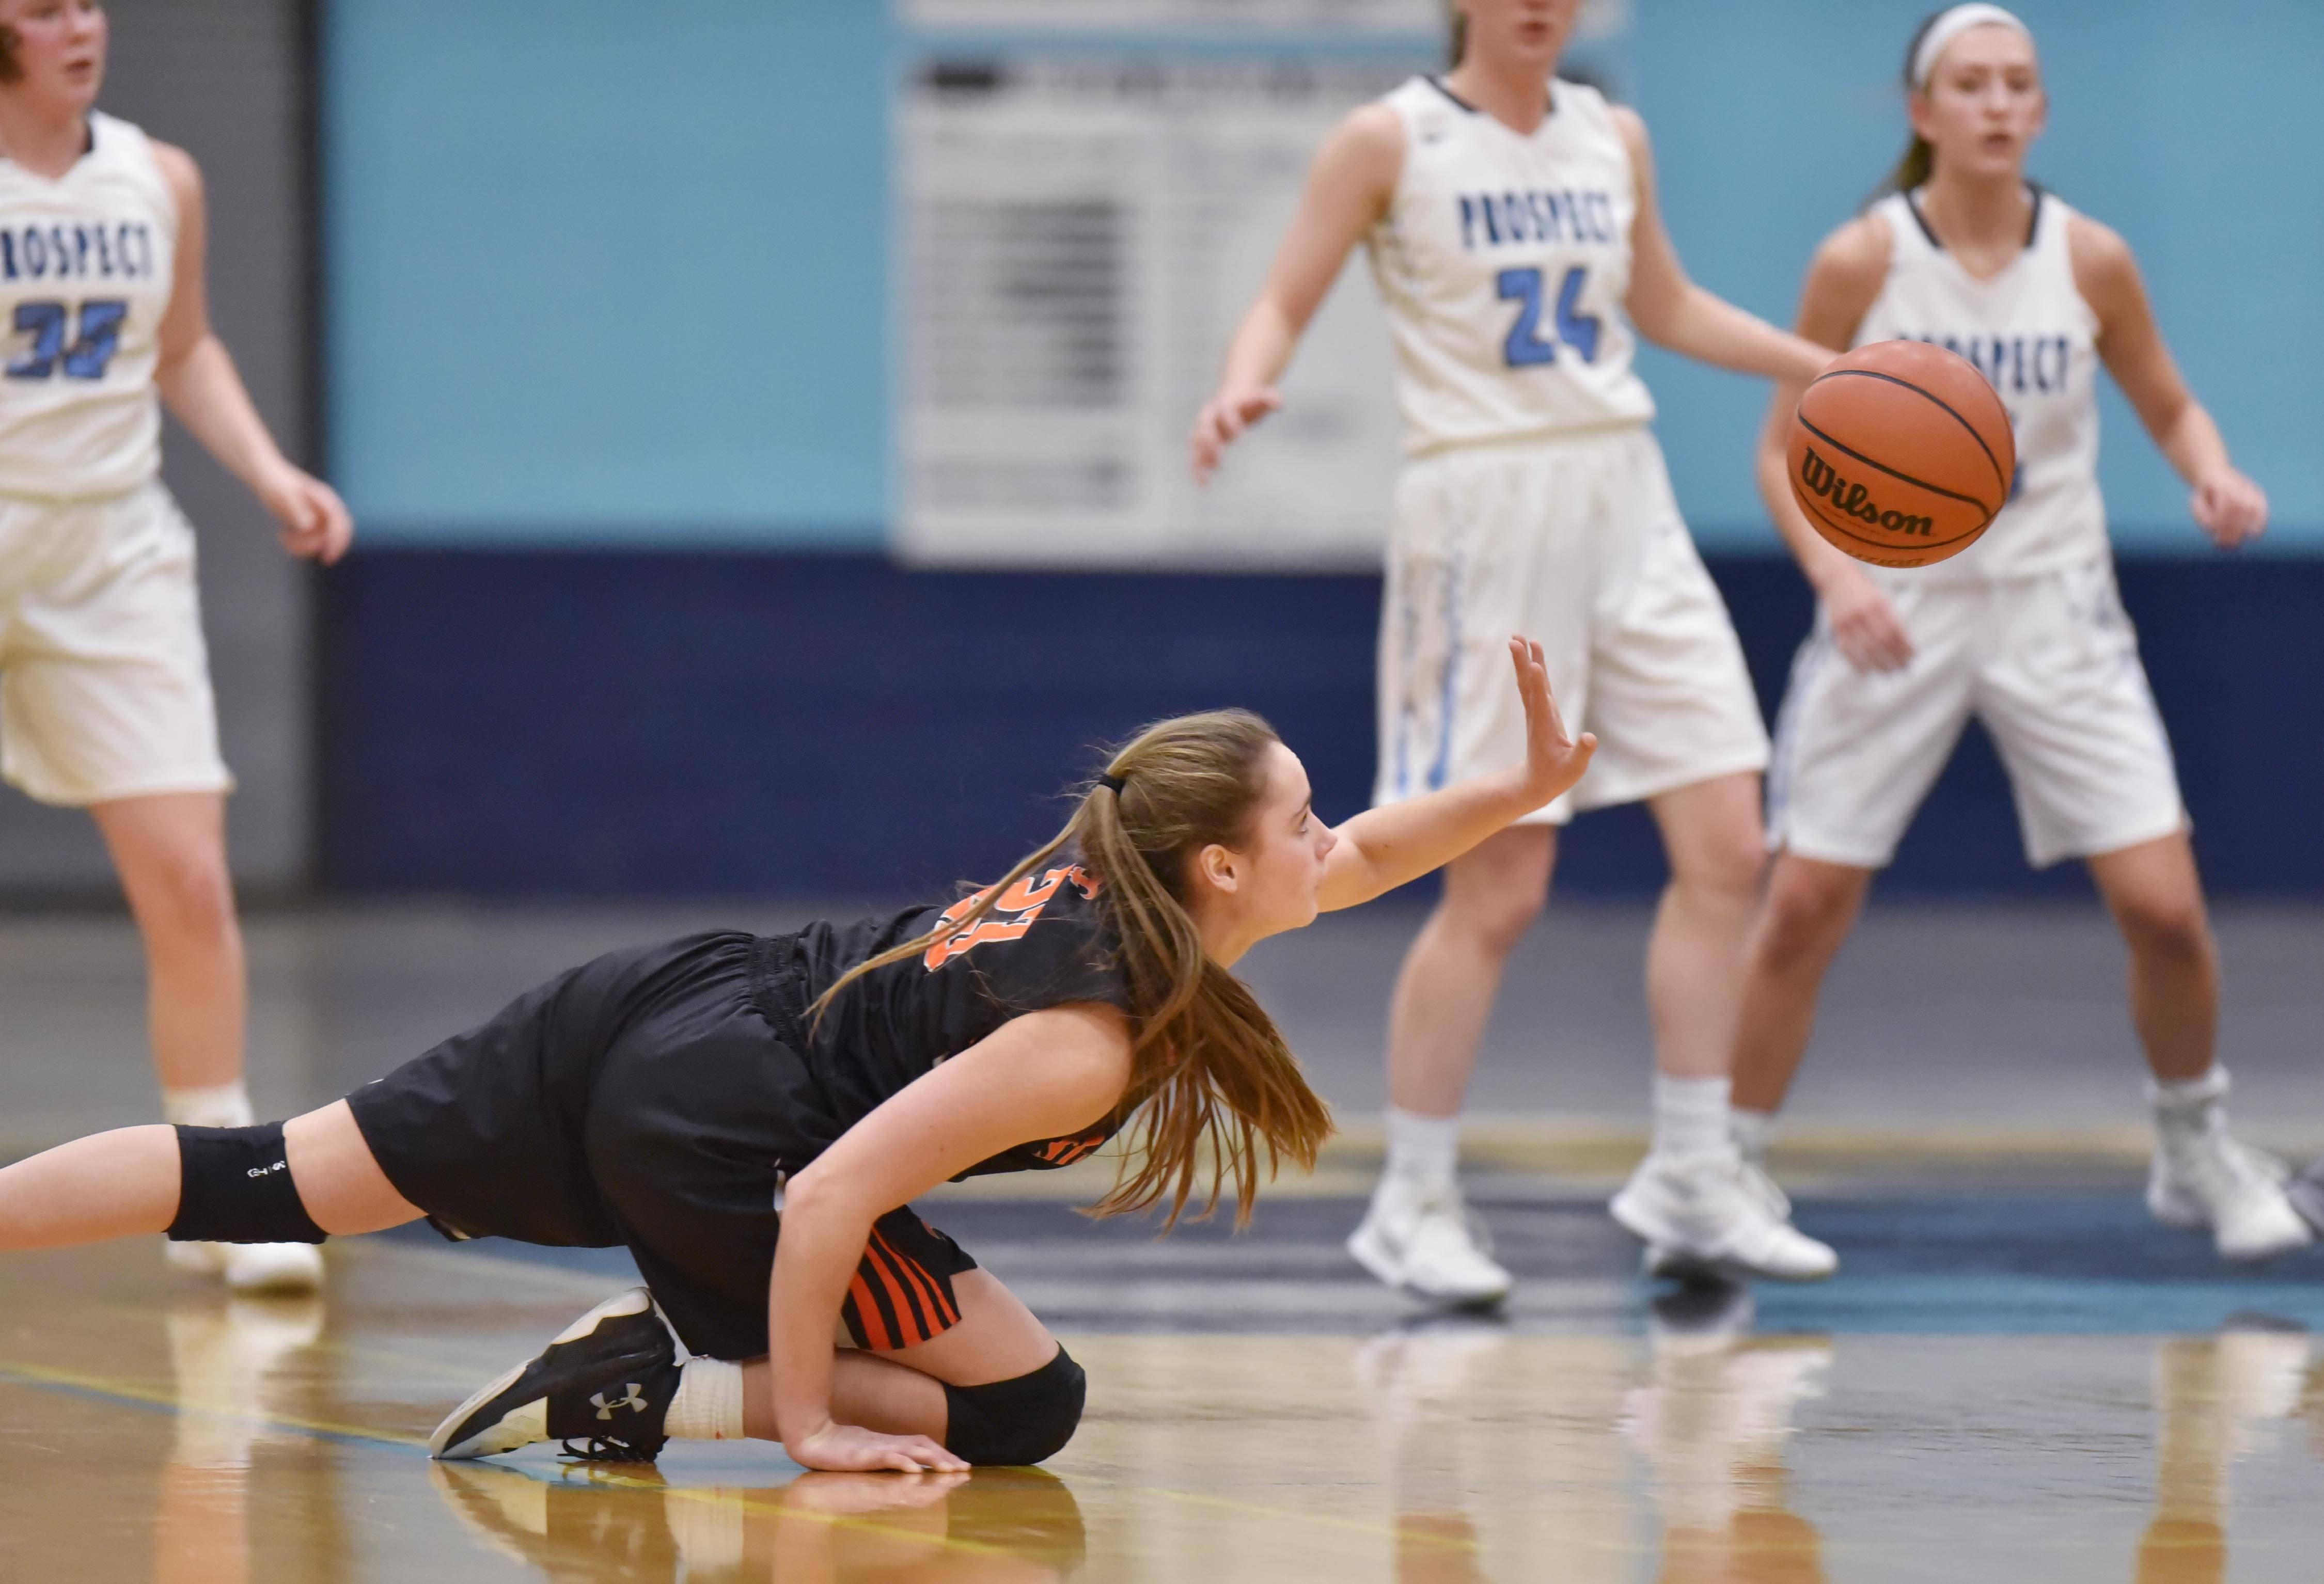 From the floor, St. Charles East's Makenna Brown slaps the ball to a teammate against Prospect Wednesday in a girls basketball game in Mount Prospect.